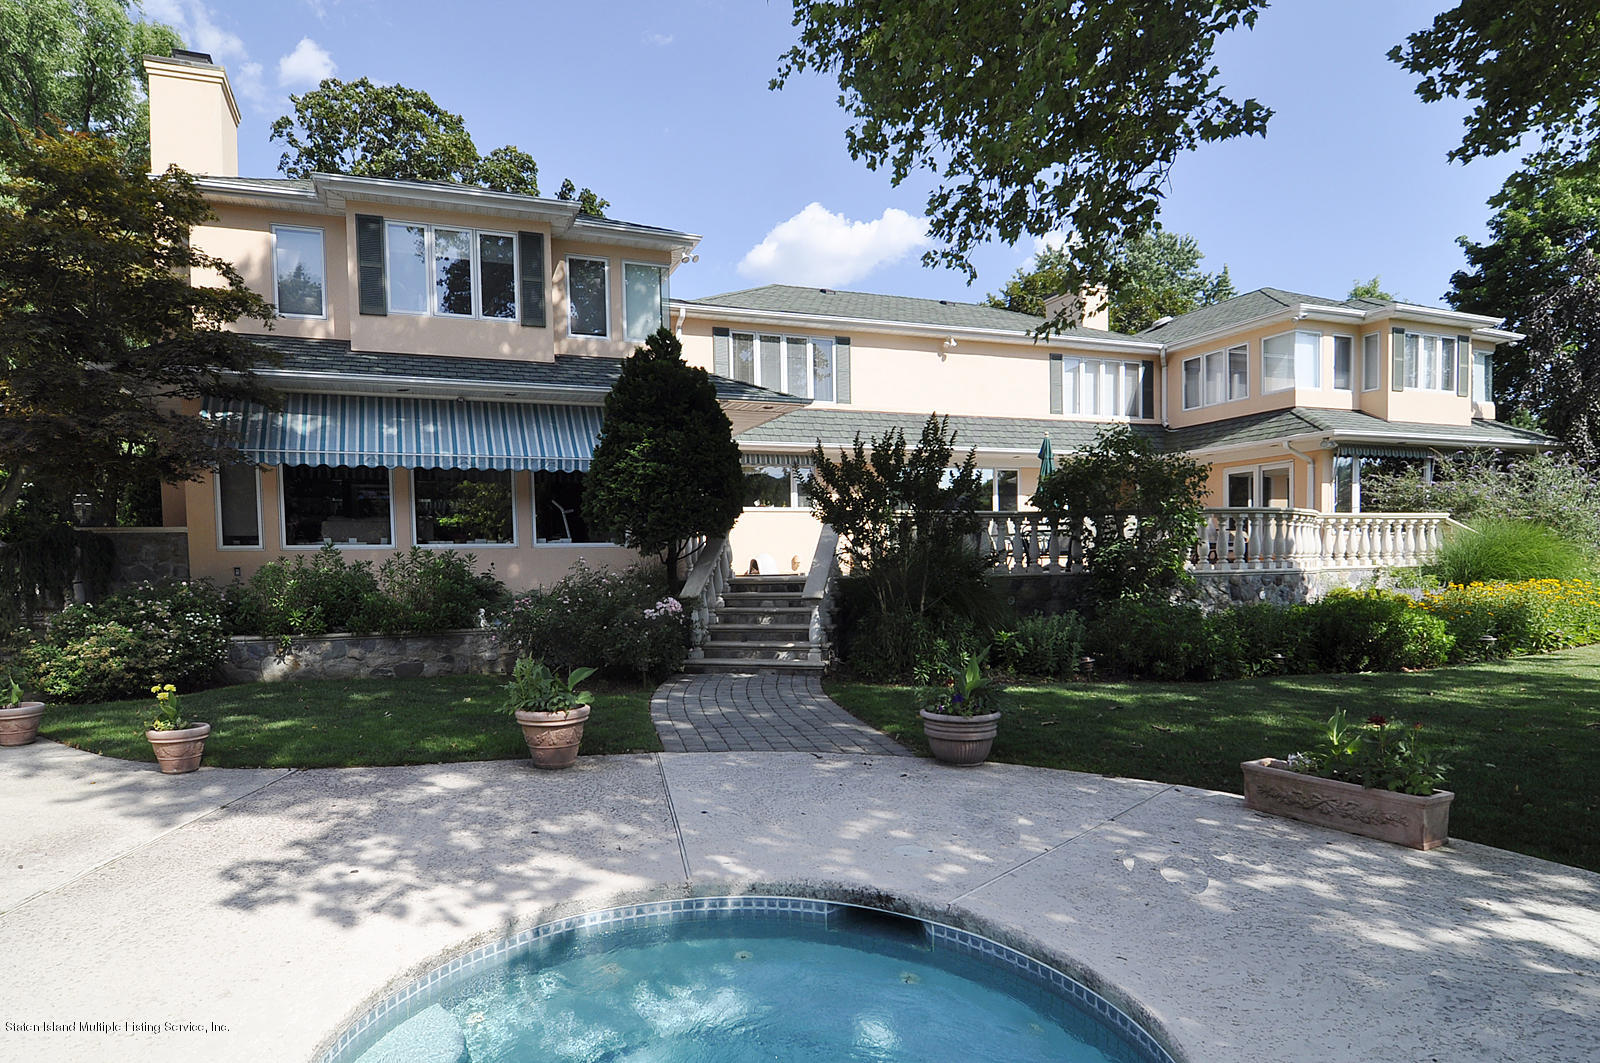 Single Family - Detached 738 Todt Hill Road  Staten Island, NY 10301, MLS-1127956-17